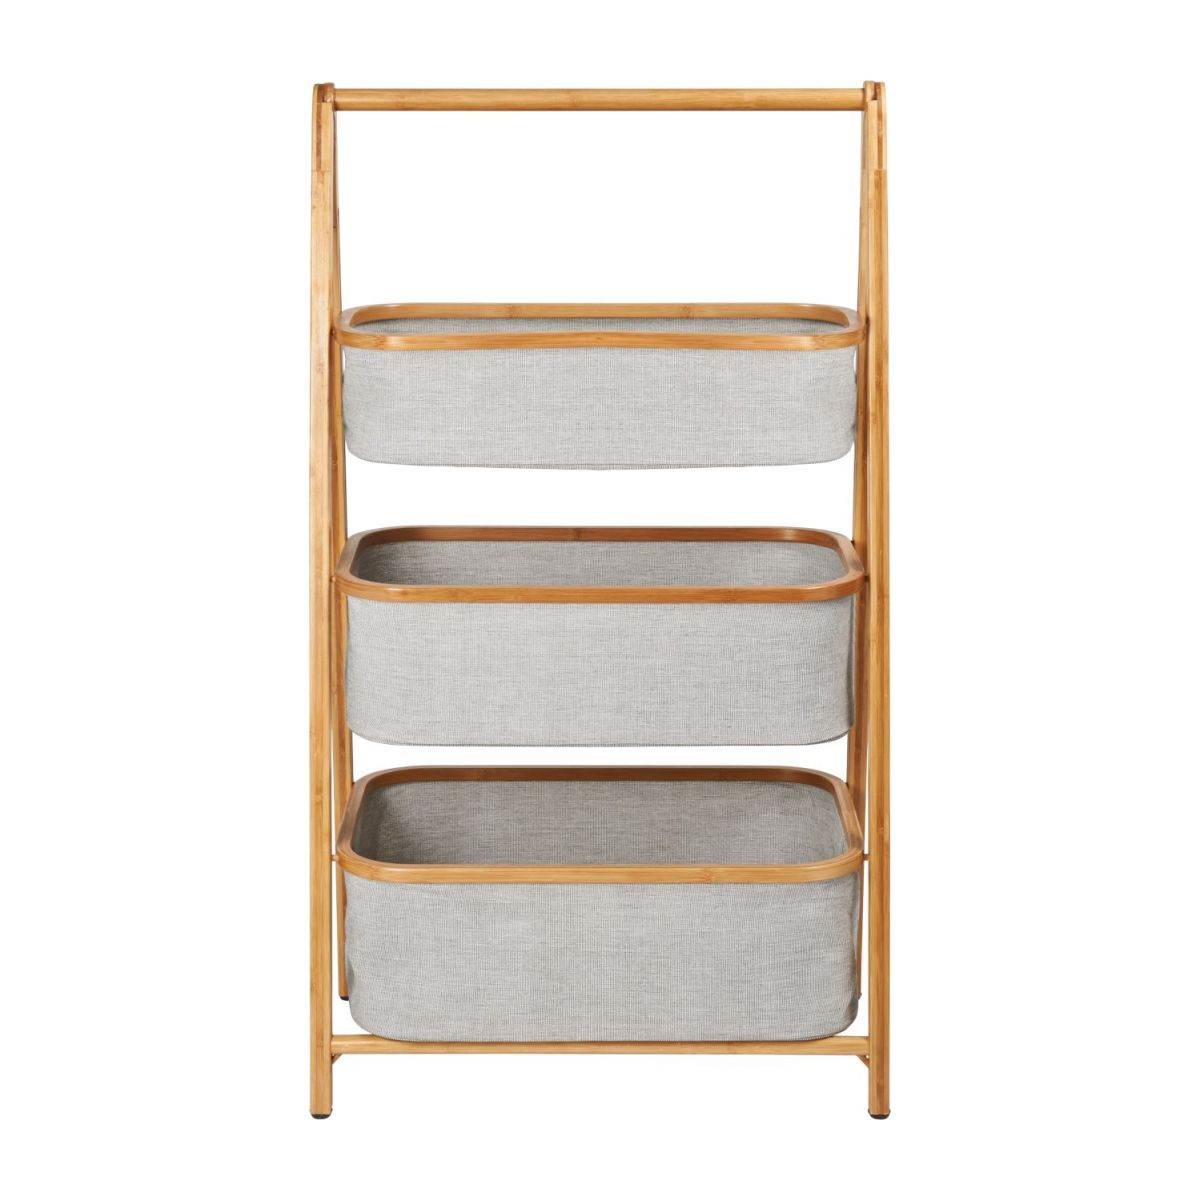 3 baskets shelf made in bamboo n°3